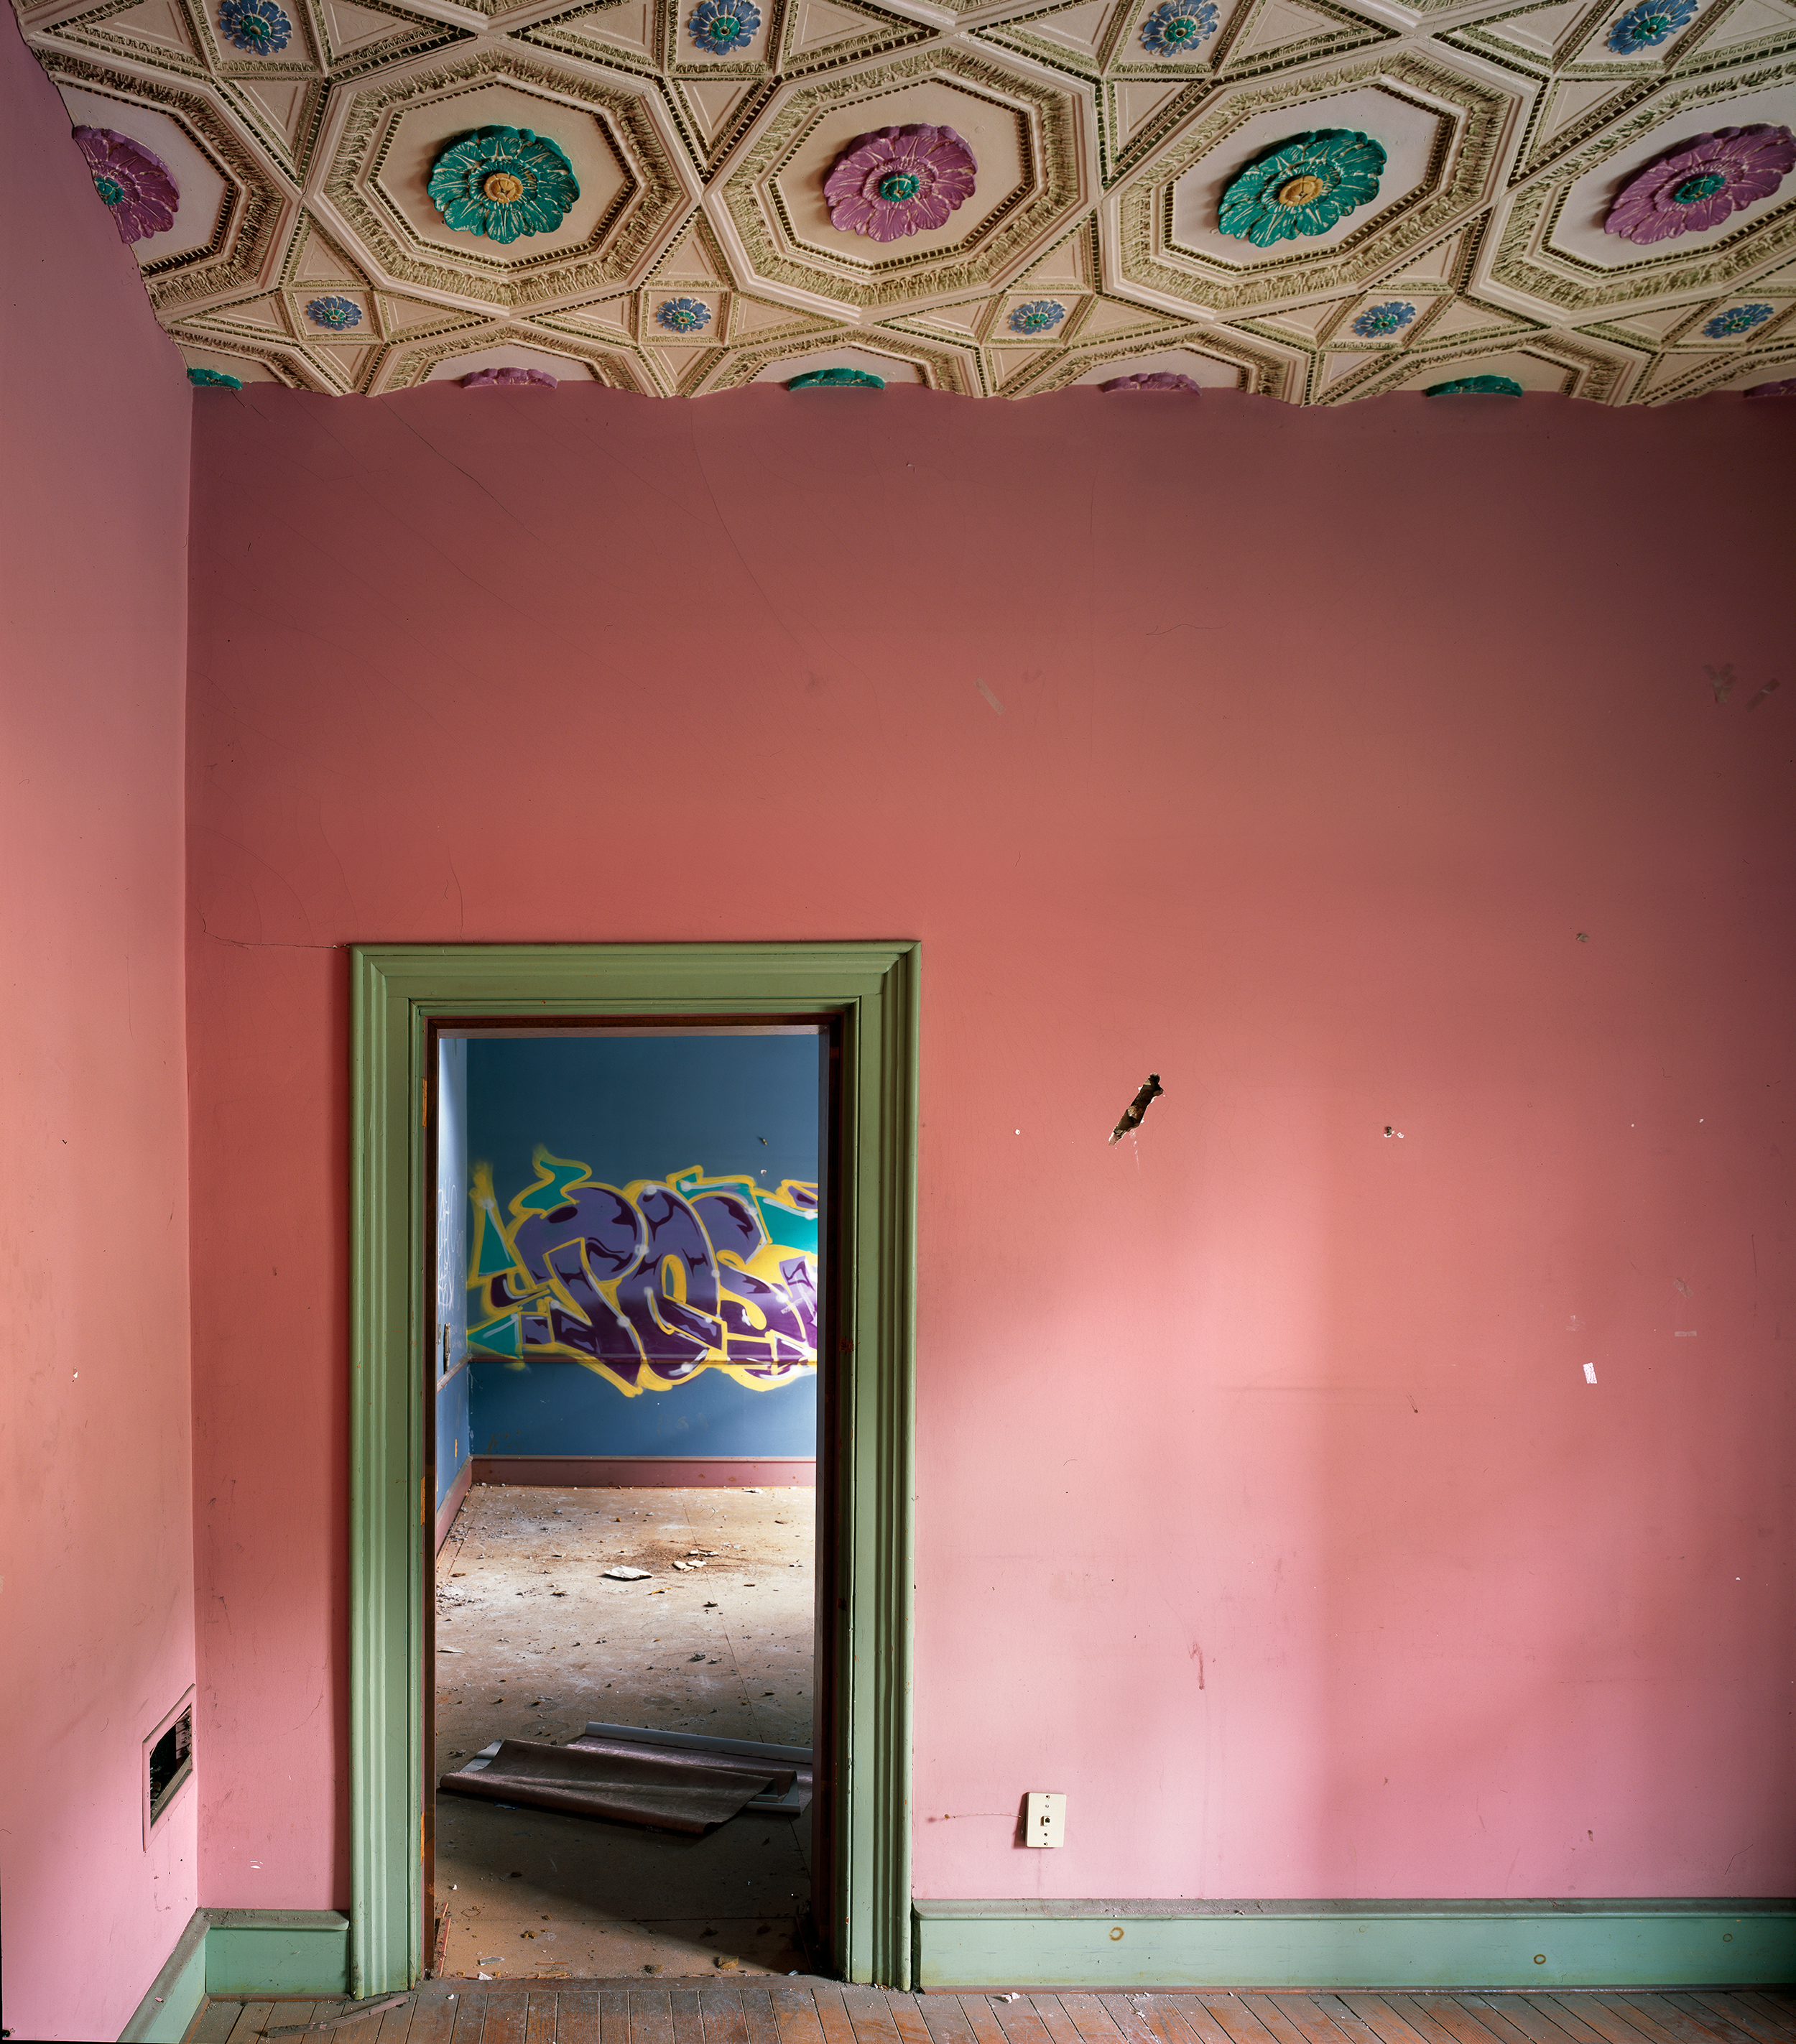 """""""Central Railroad of New Jersey Station, 1-75 S Wilkes-Barre Blvd, Wilkes-Barre, PA """" , 2018 Archival pigment print, 20""""x16""""  Courtesy Yoav Friedlander & Carrie Able Gallery"""